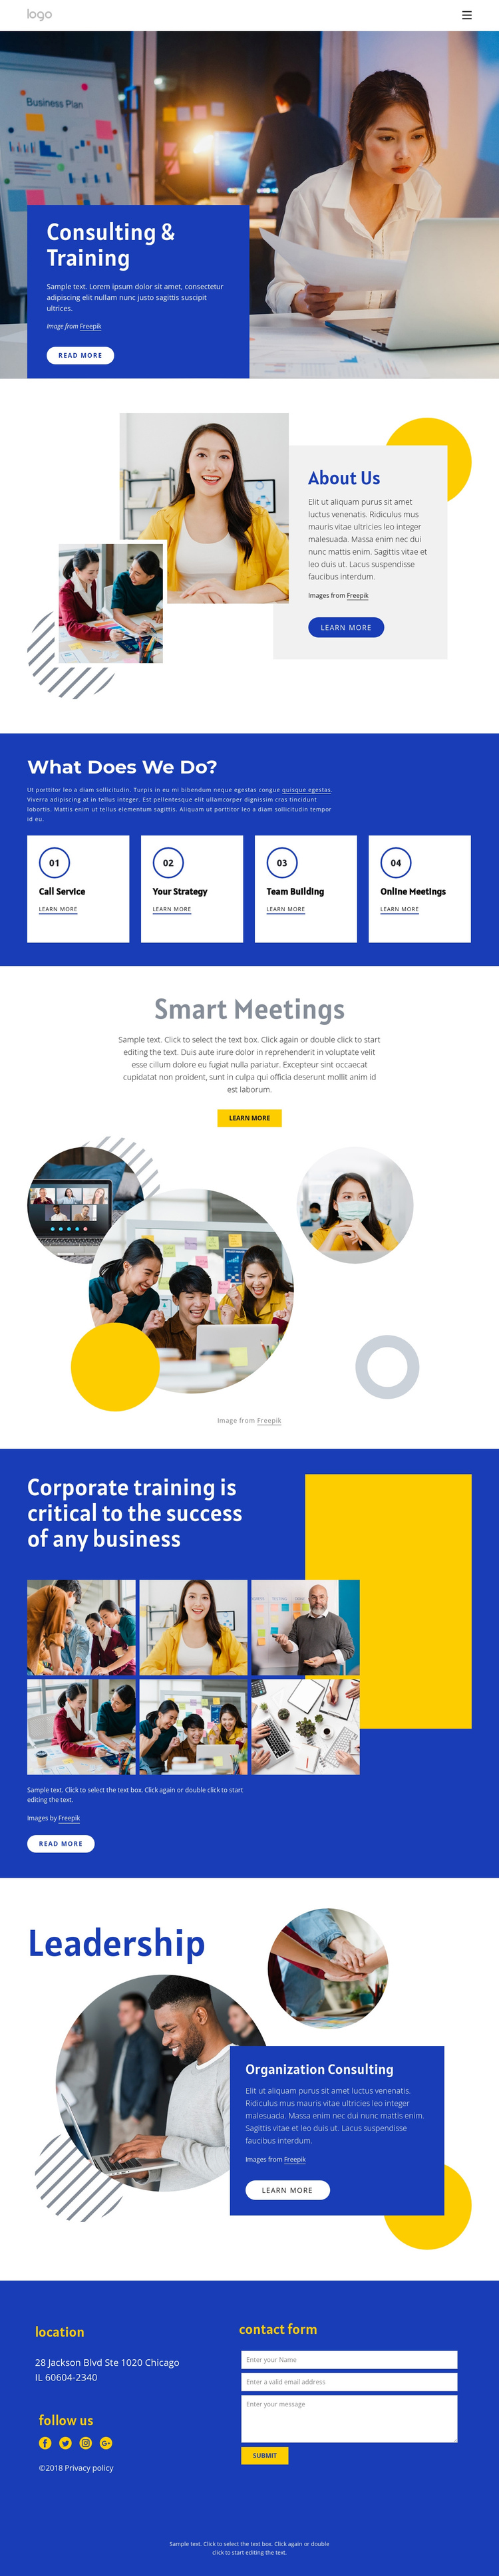 Consulting and training Website Builder Software